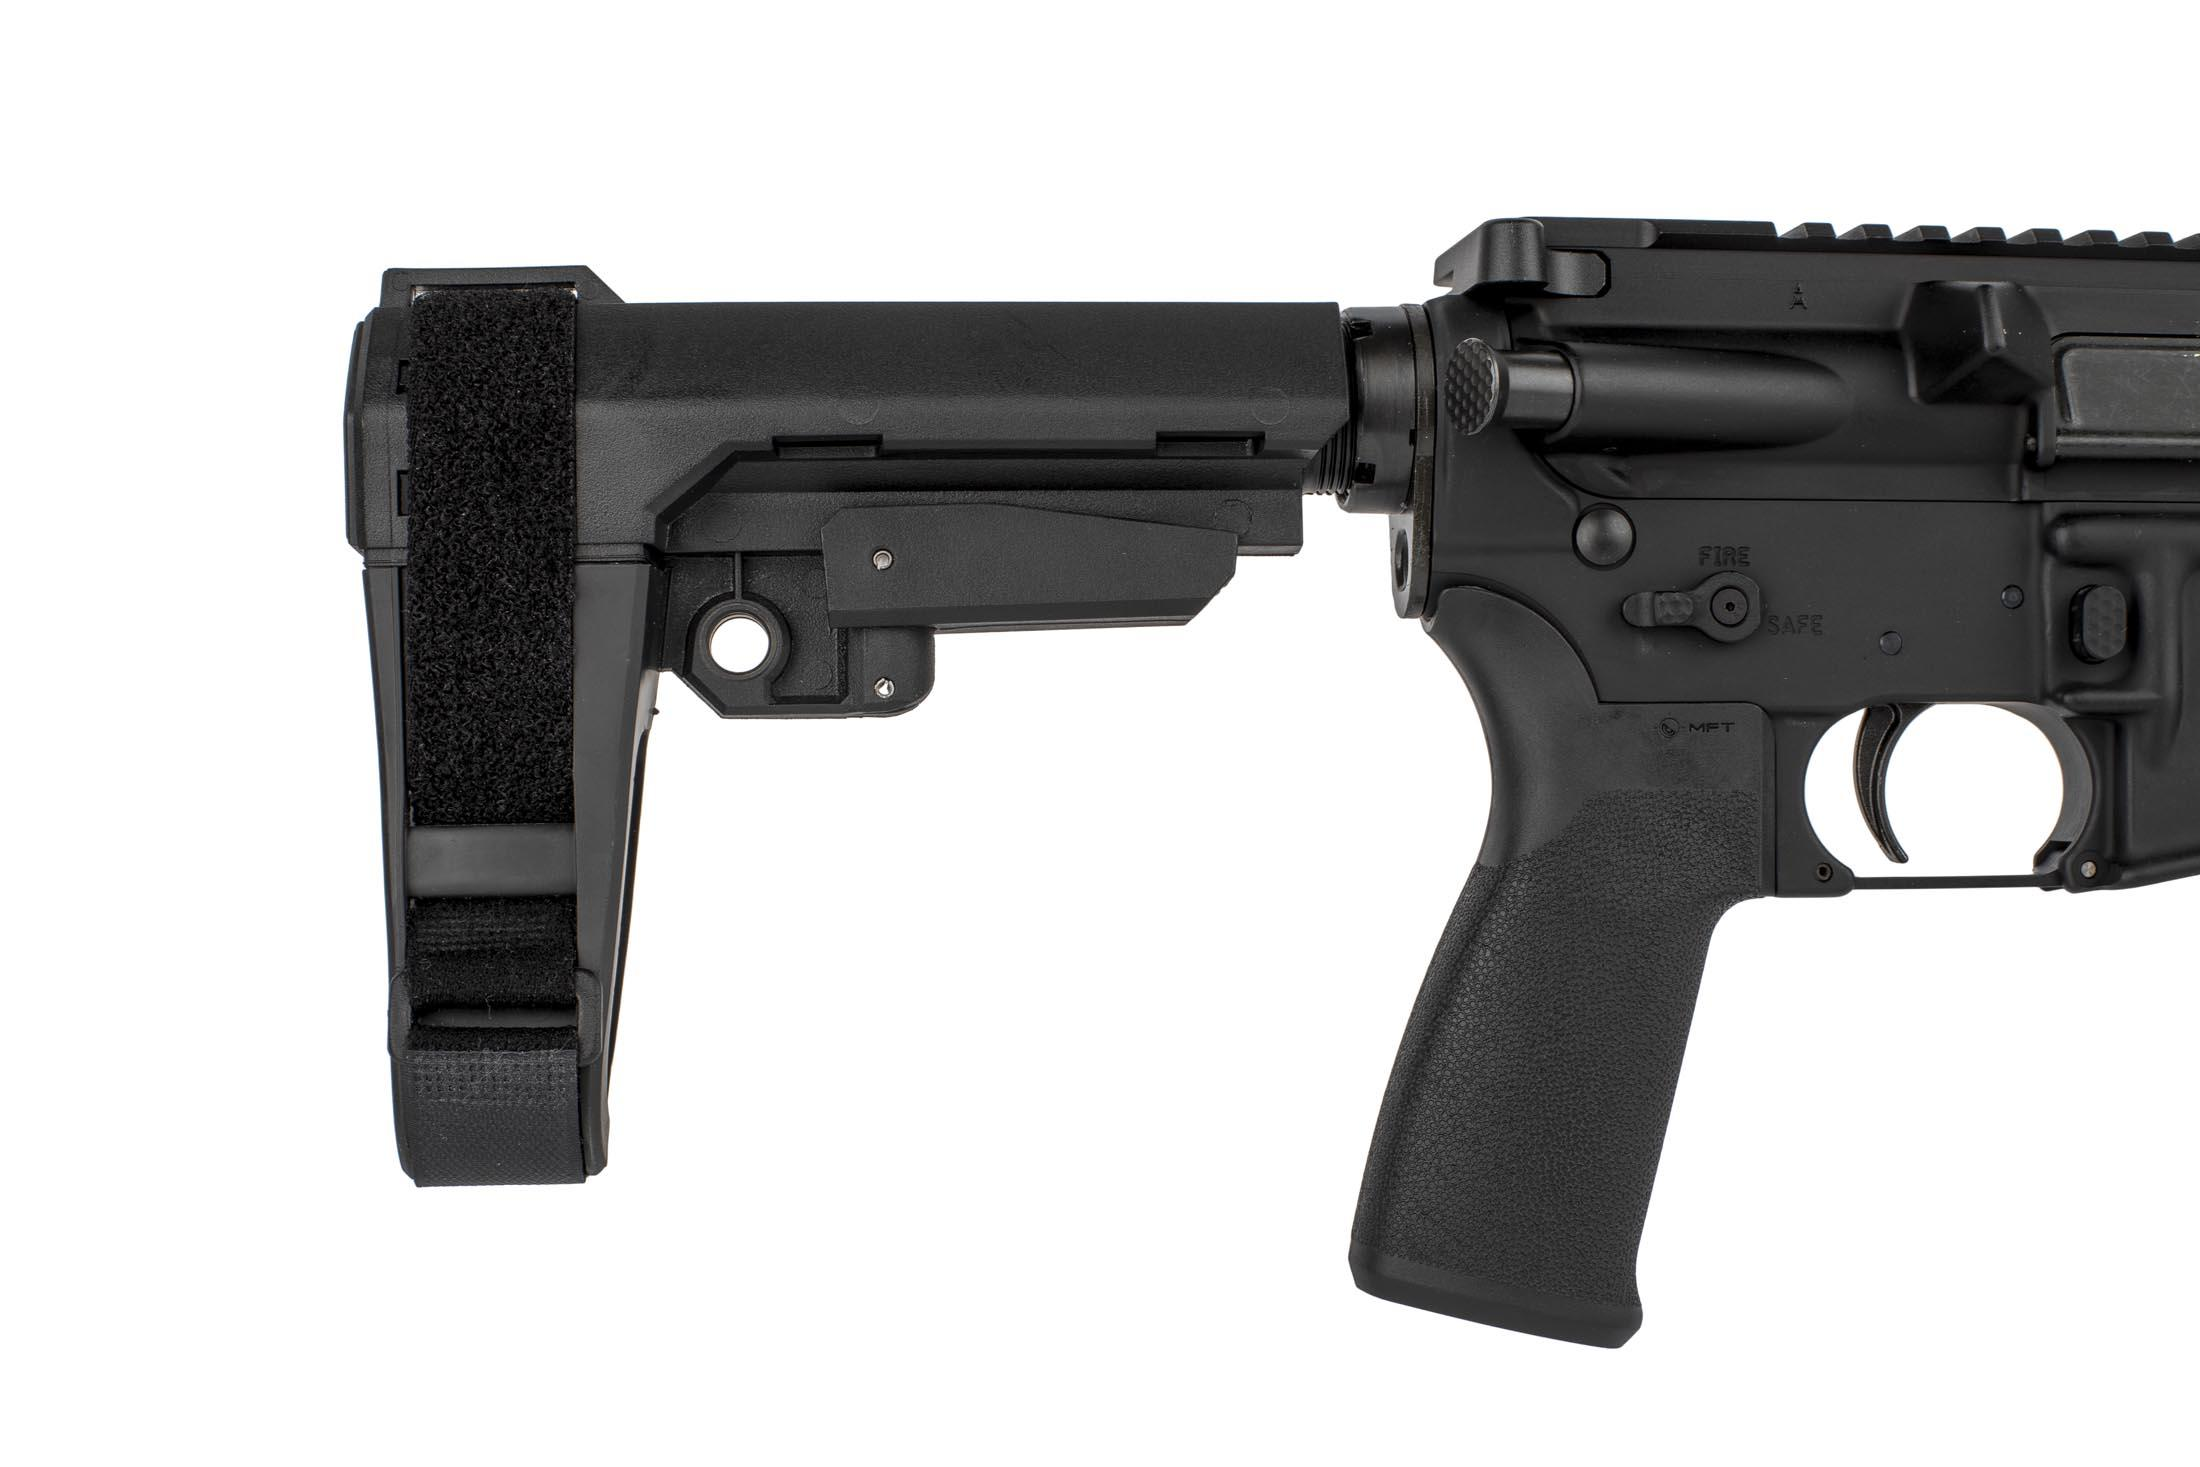 The 7.62x39 pistol from radical firearms comes with a 5 position adjustable SBA 3 arm brace